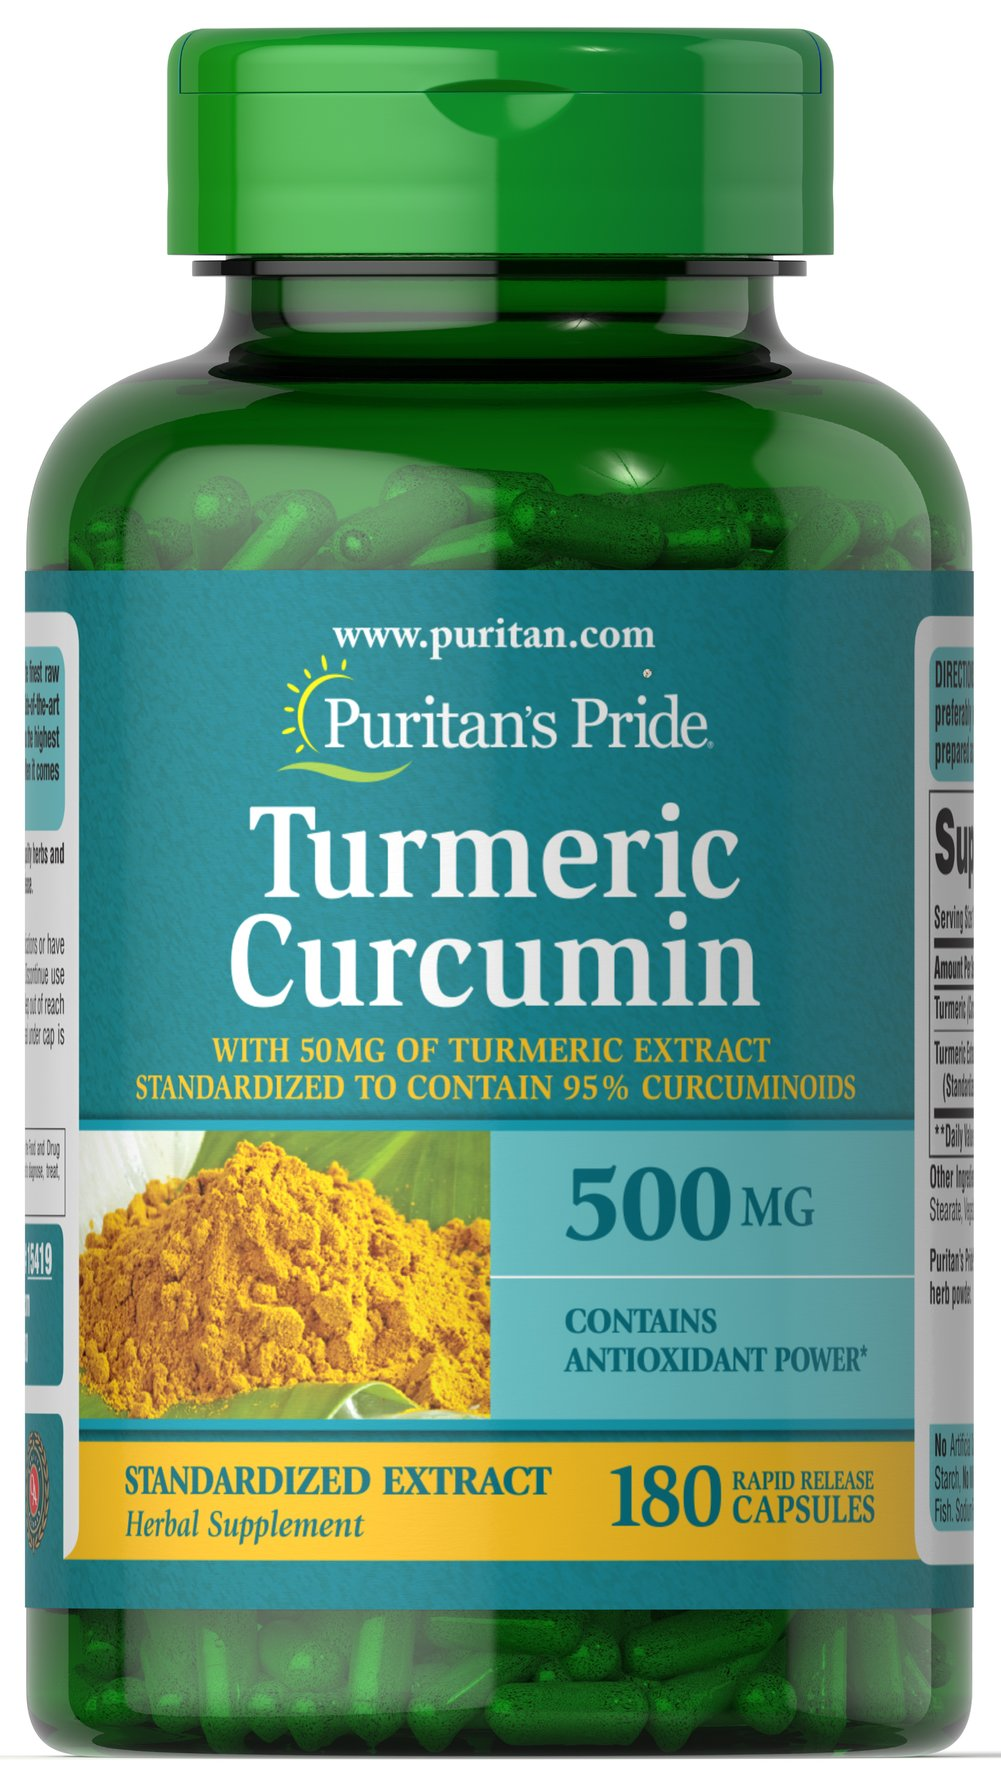 Turmeric Curcumin 450 mg <p>The active ingredients in Turmeric include beneficial flavonoids called Curcuminoids, which are plant-based antioxidants. **</p><p>Contains antioxidants</p> 180 Capsules 450 mg $27.99